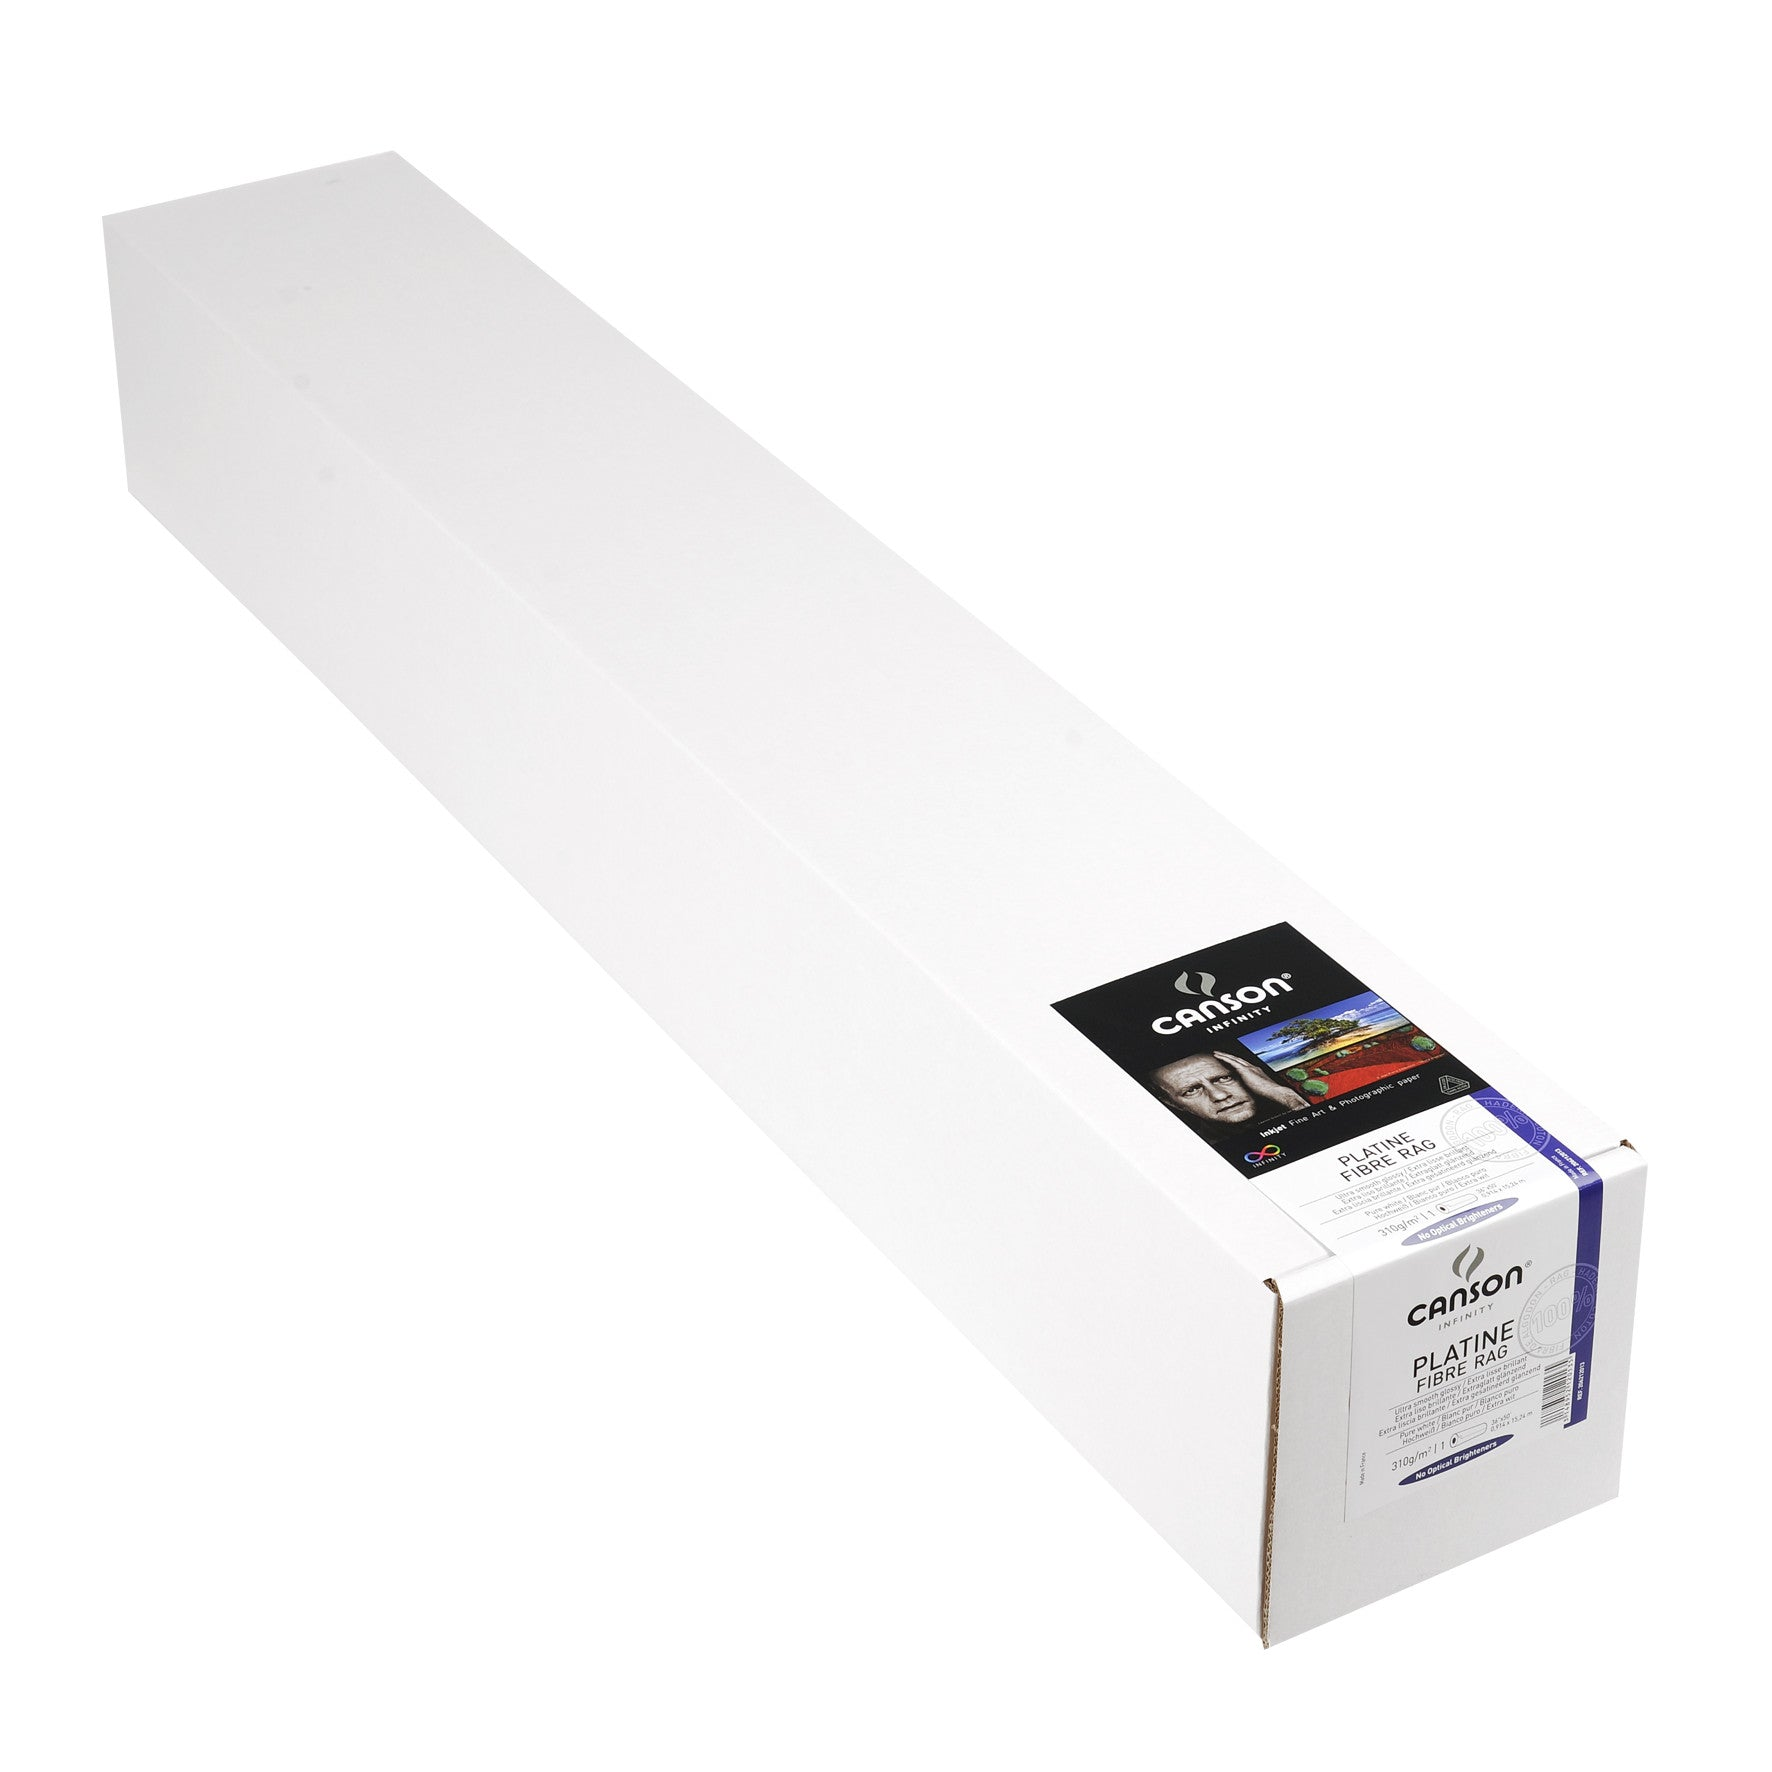 "Canson Infinity Platine Fibre Rag - 310gsm - 36""x50' roll"